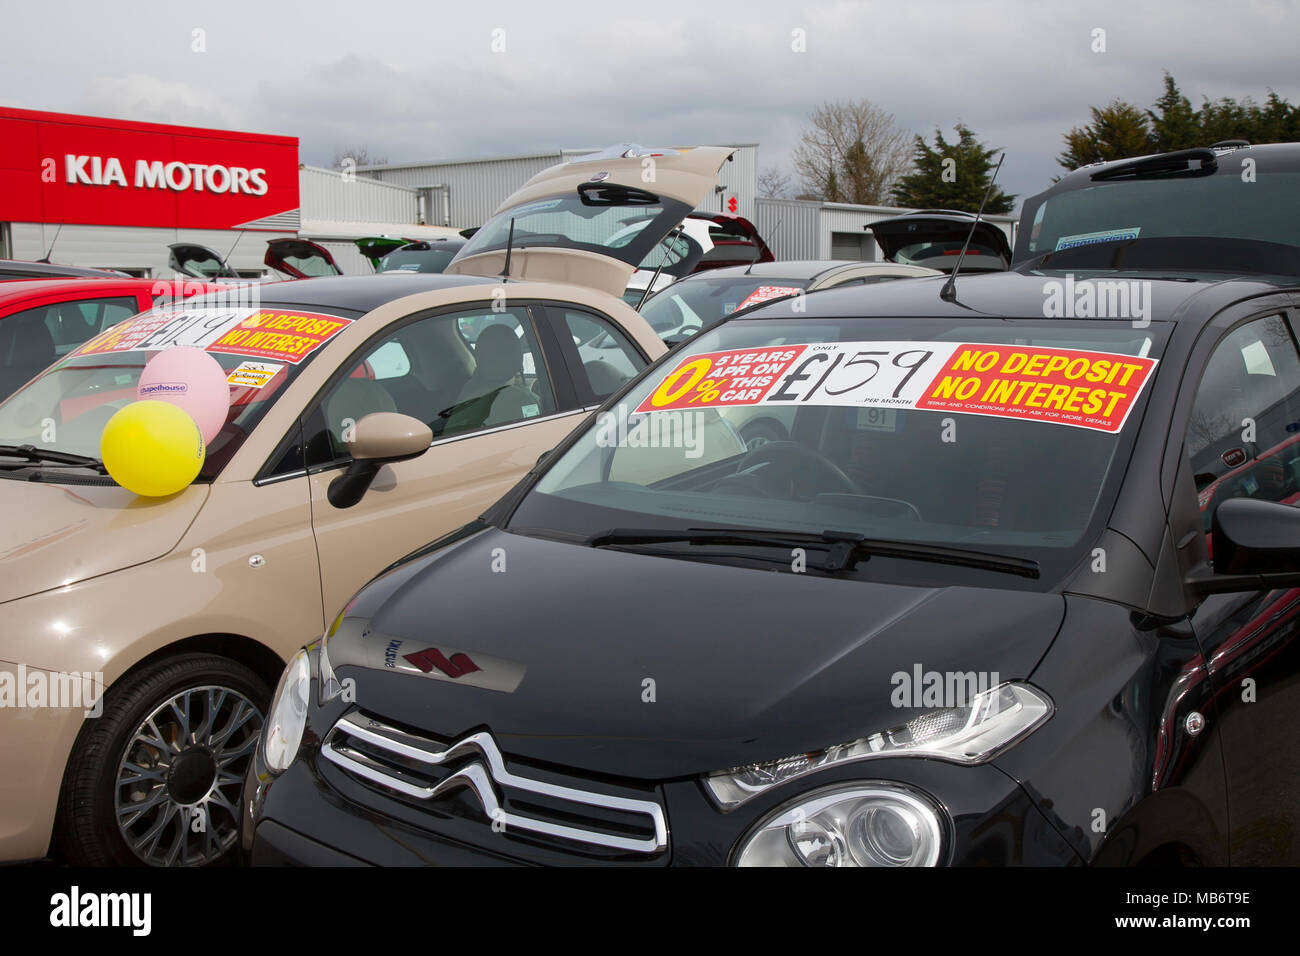 Second Hand Cars For Sale Margate